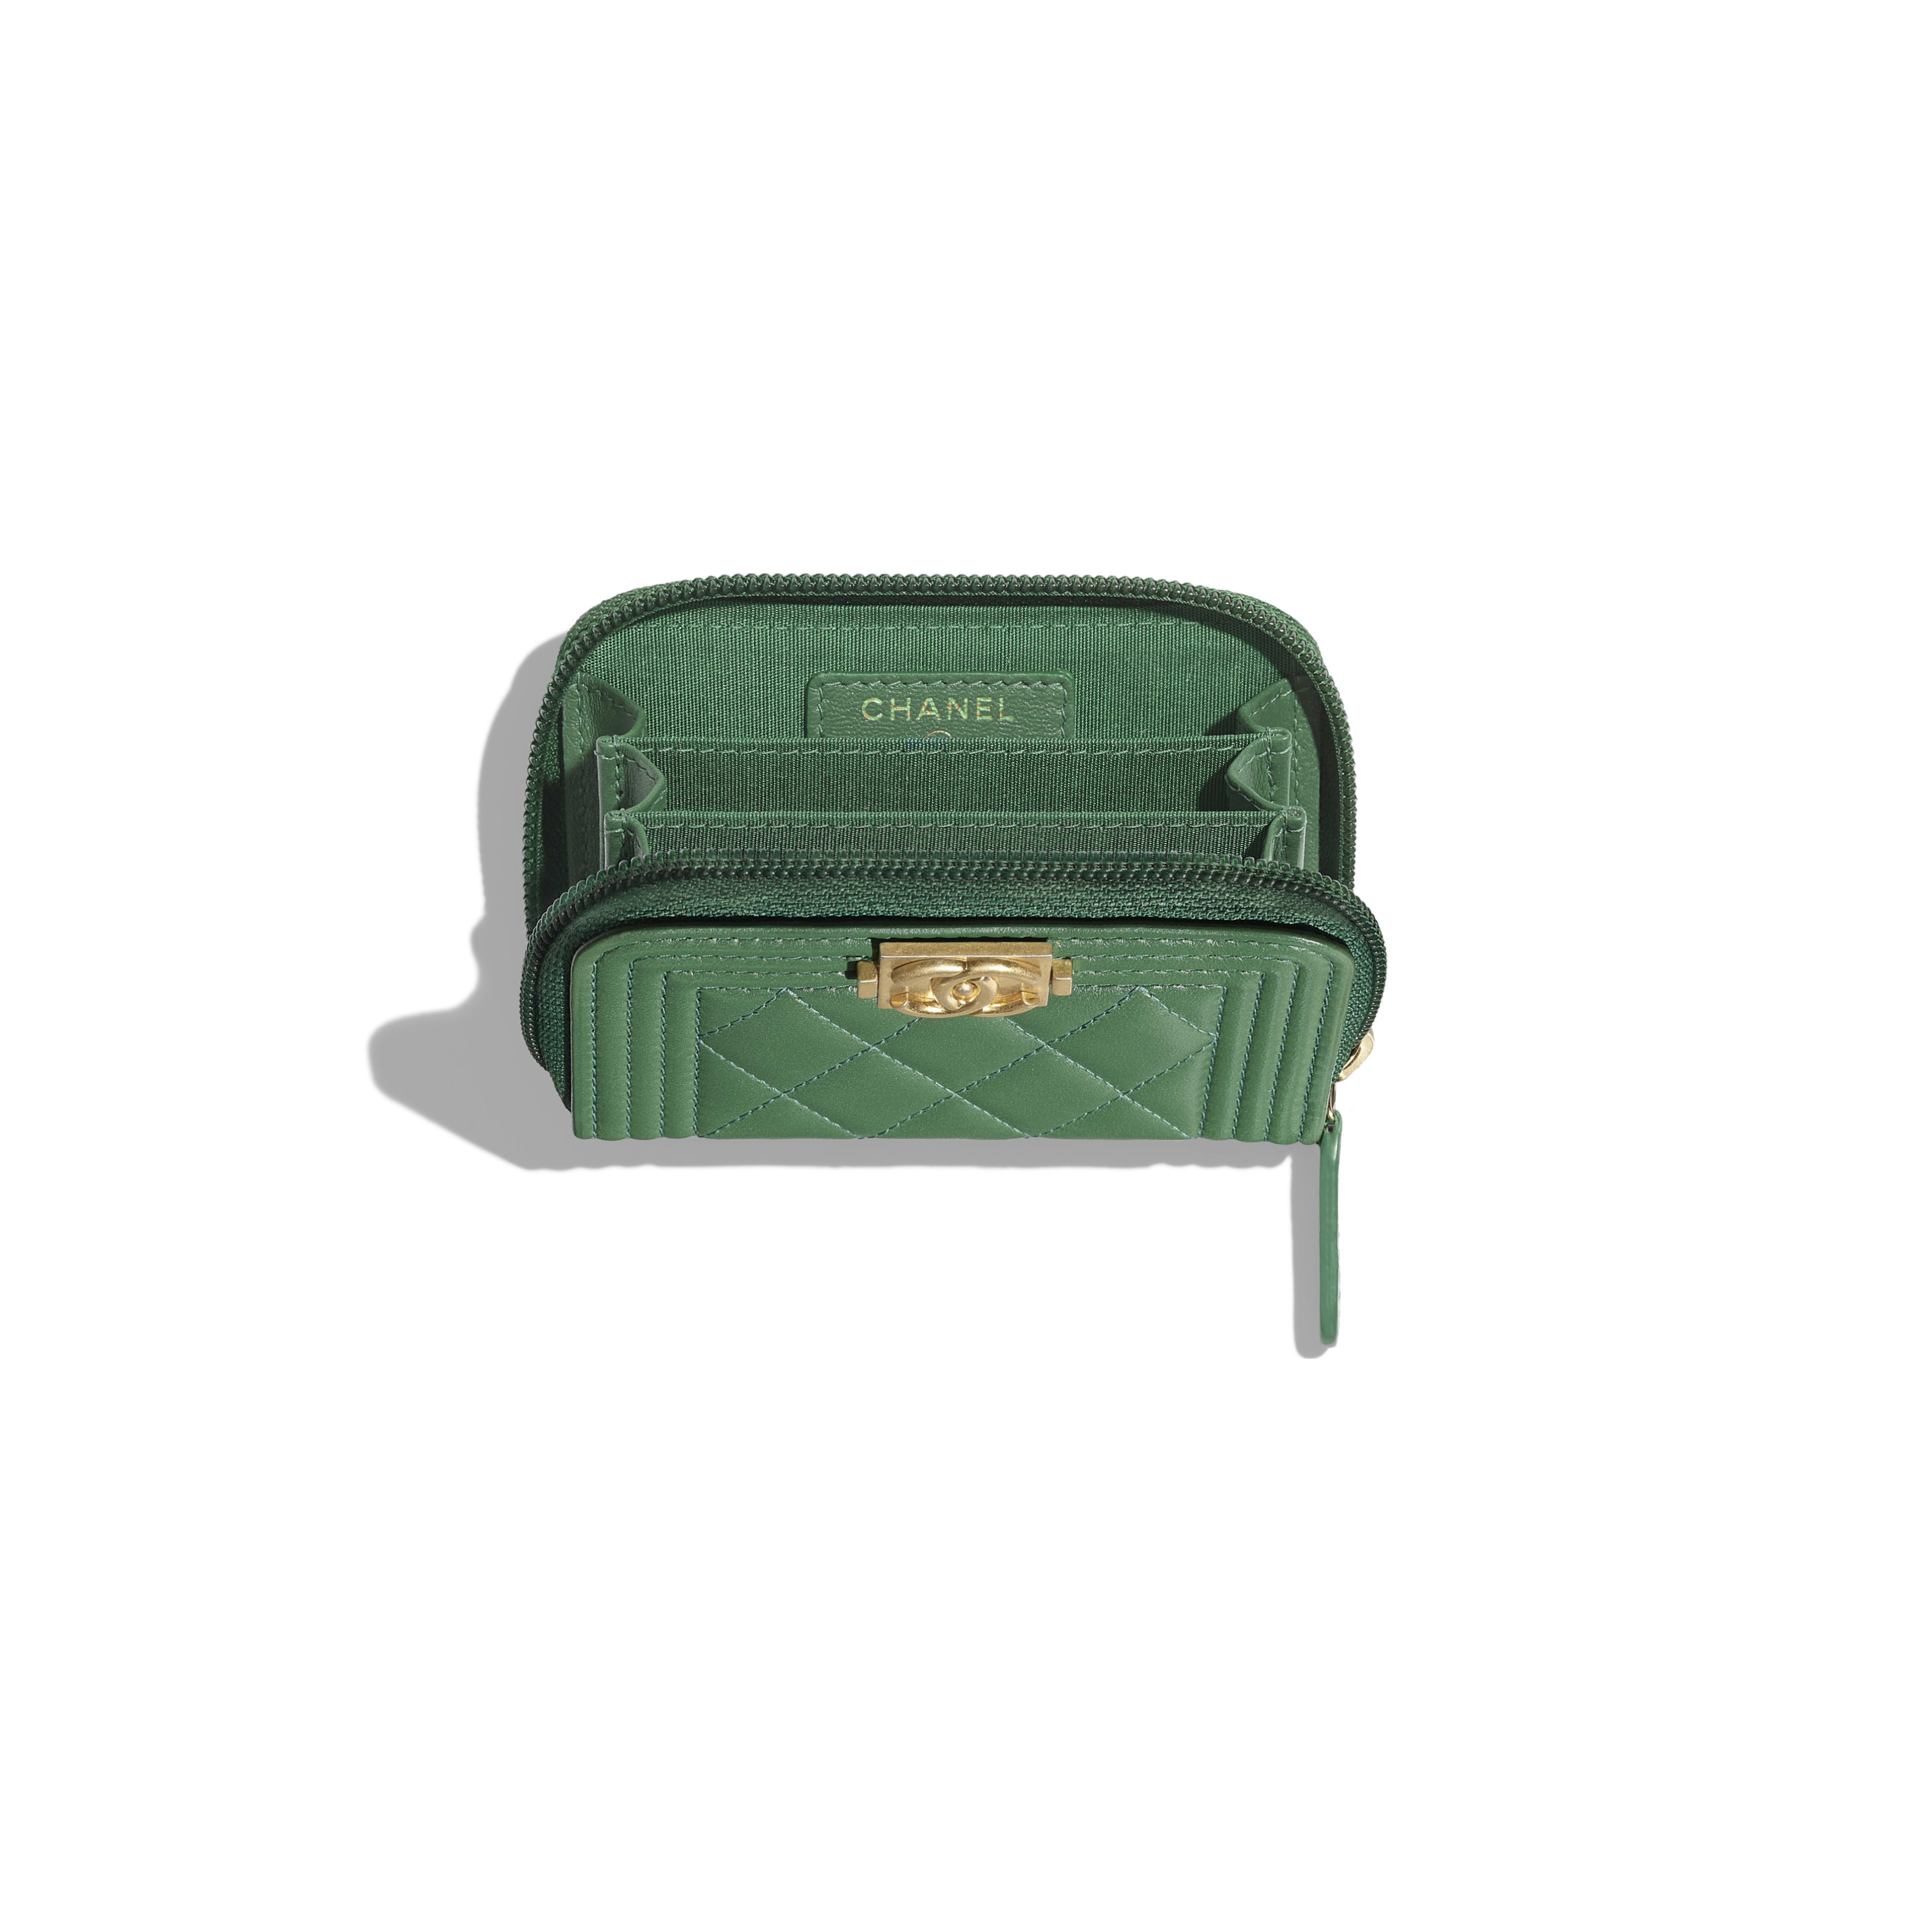 BOY CHANEL Zipped Coin Purse - Green - Lambskin - Other view - see full sized version